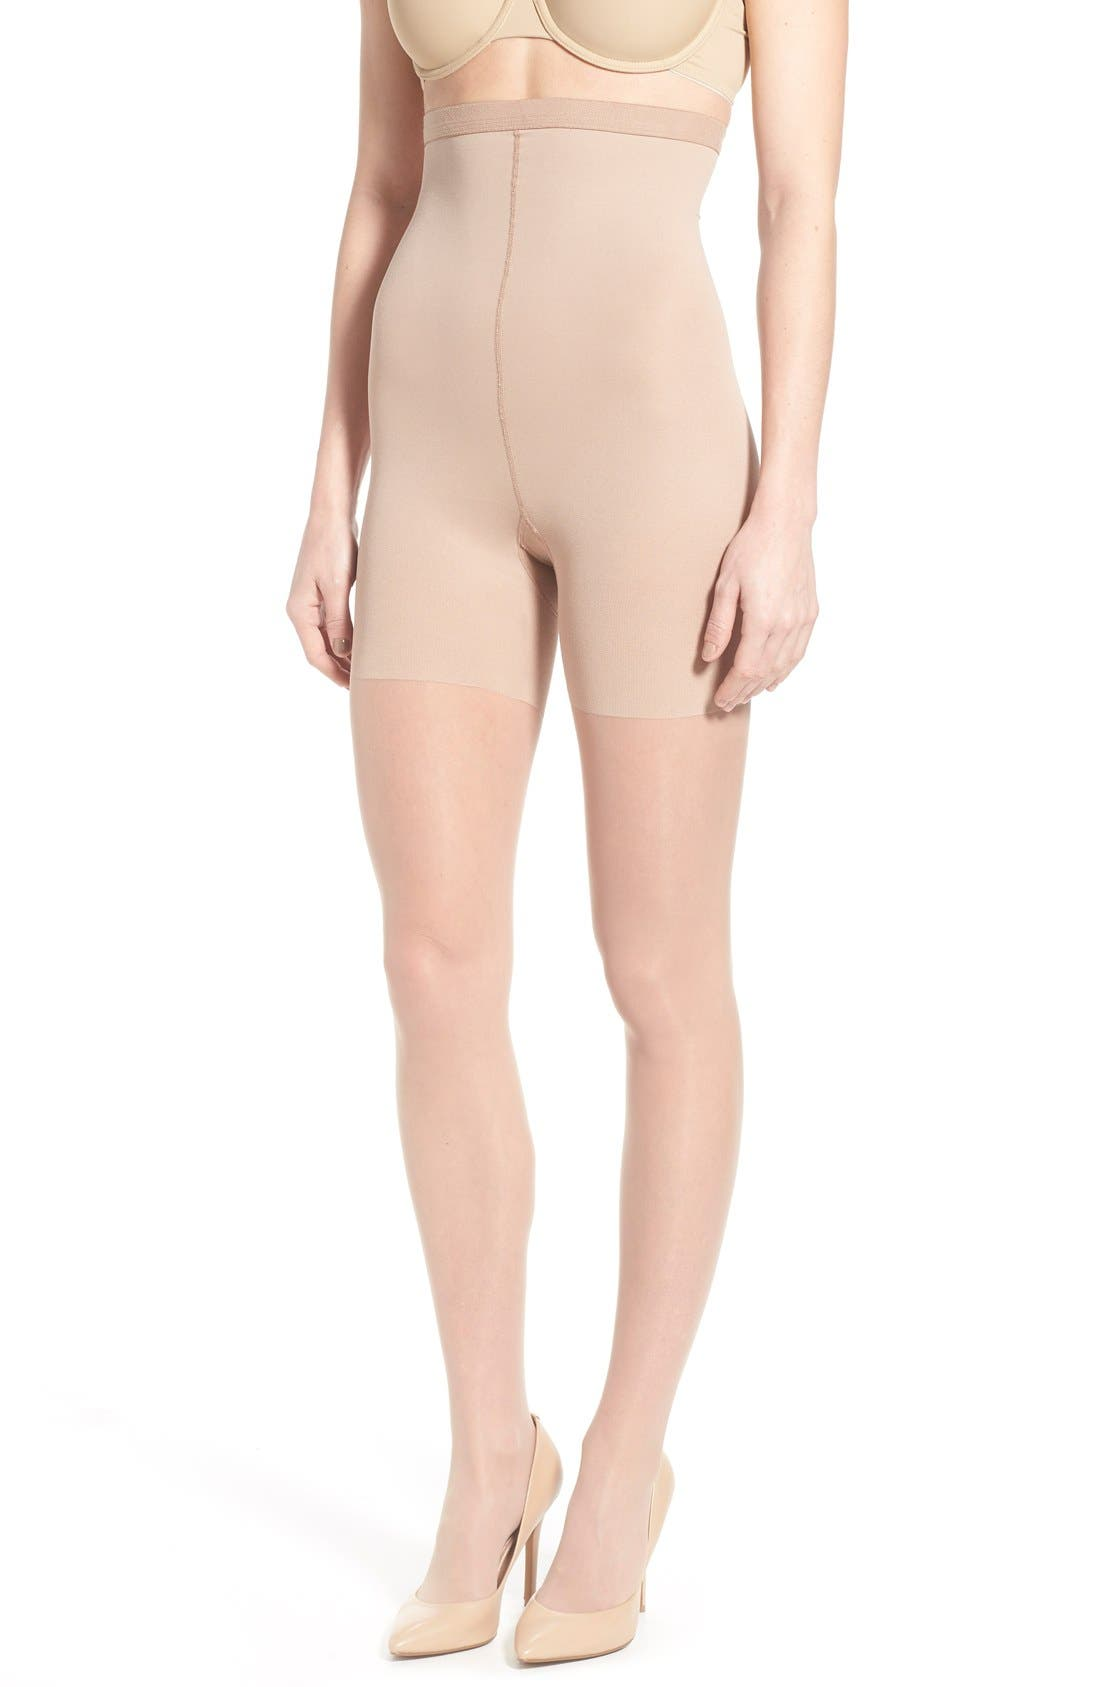 Luxe High Waist Shaping Pantyhose,                             Main thumbnail 1, color,                             250